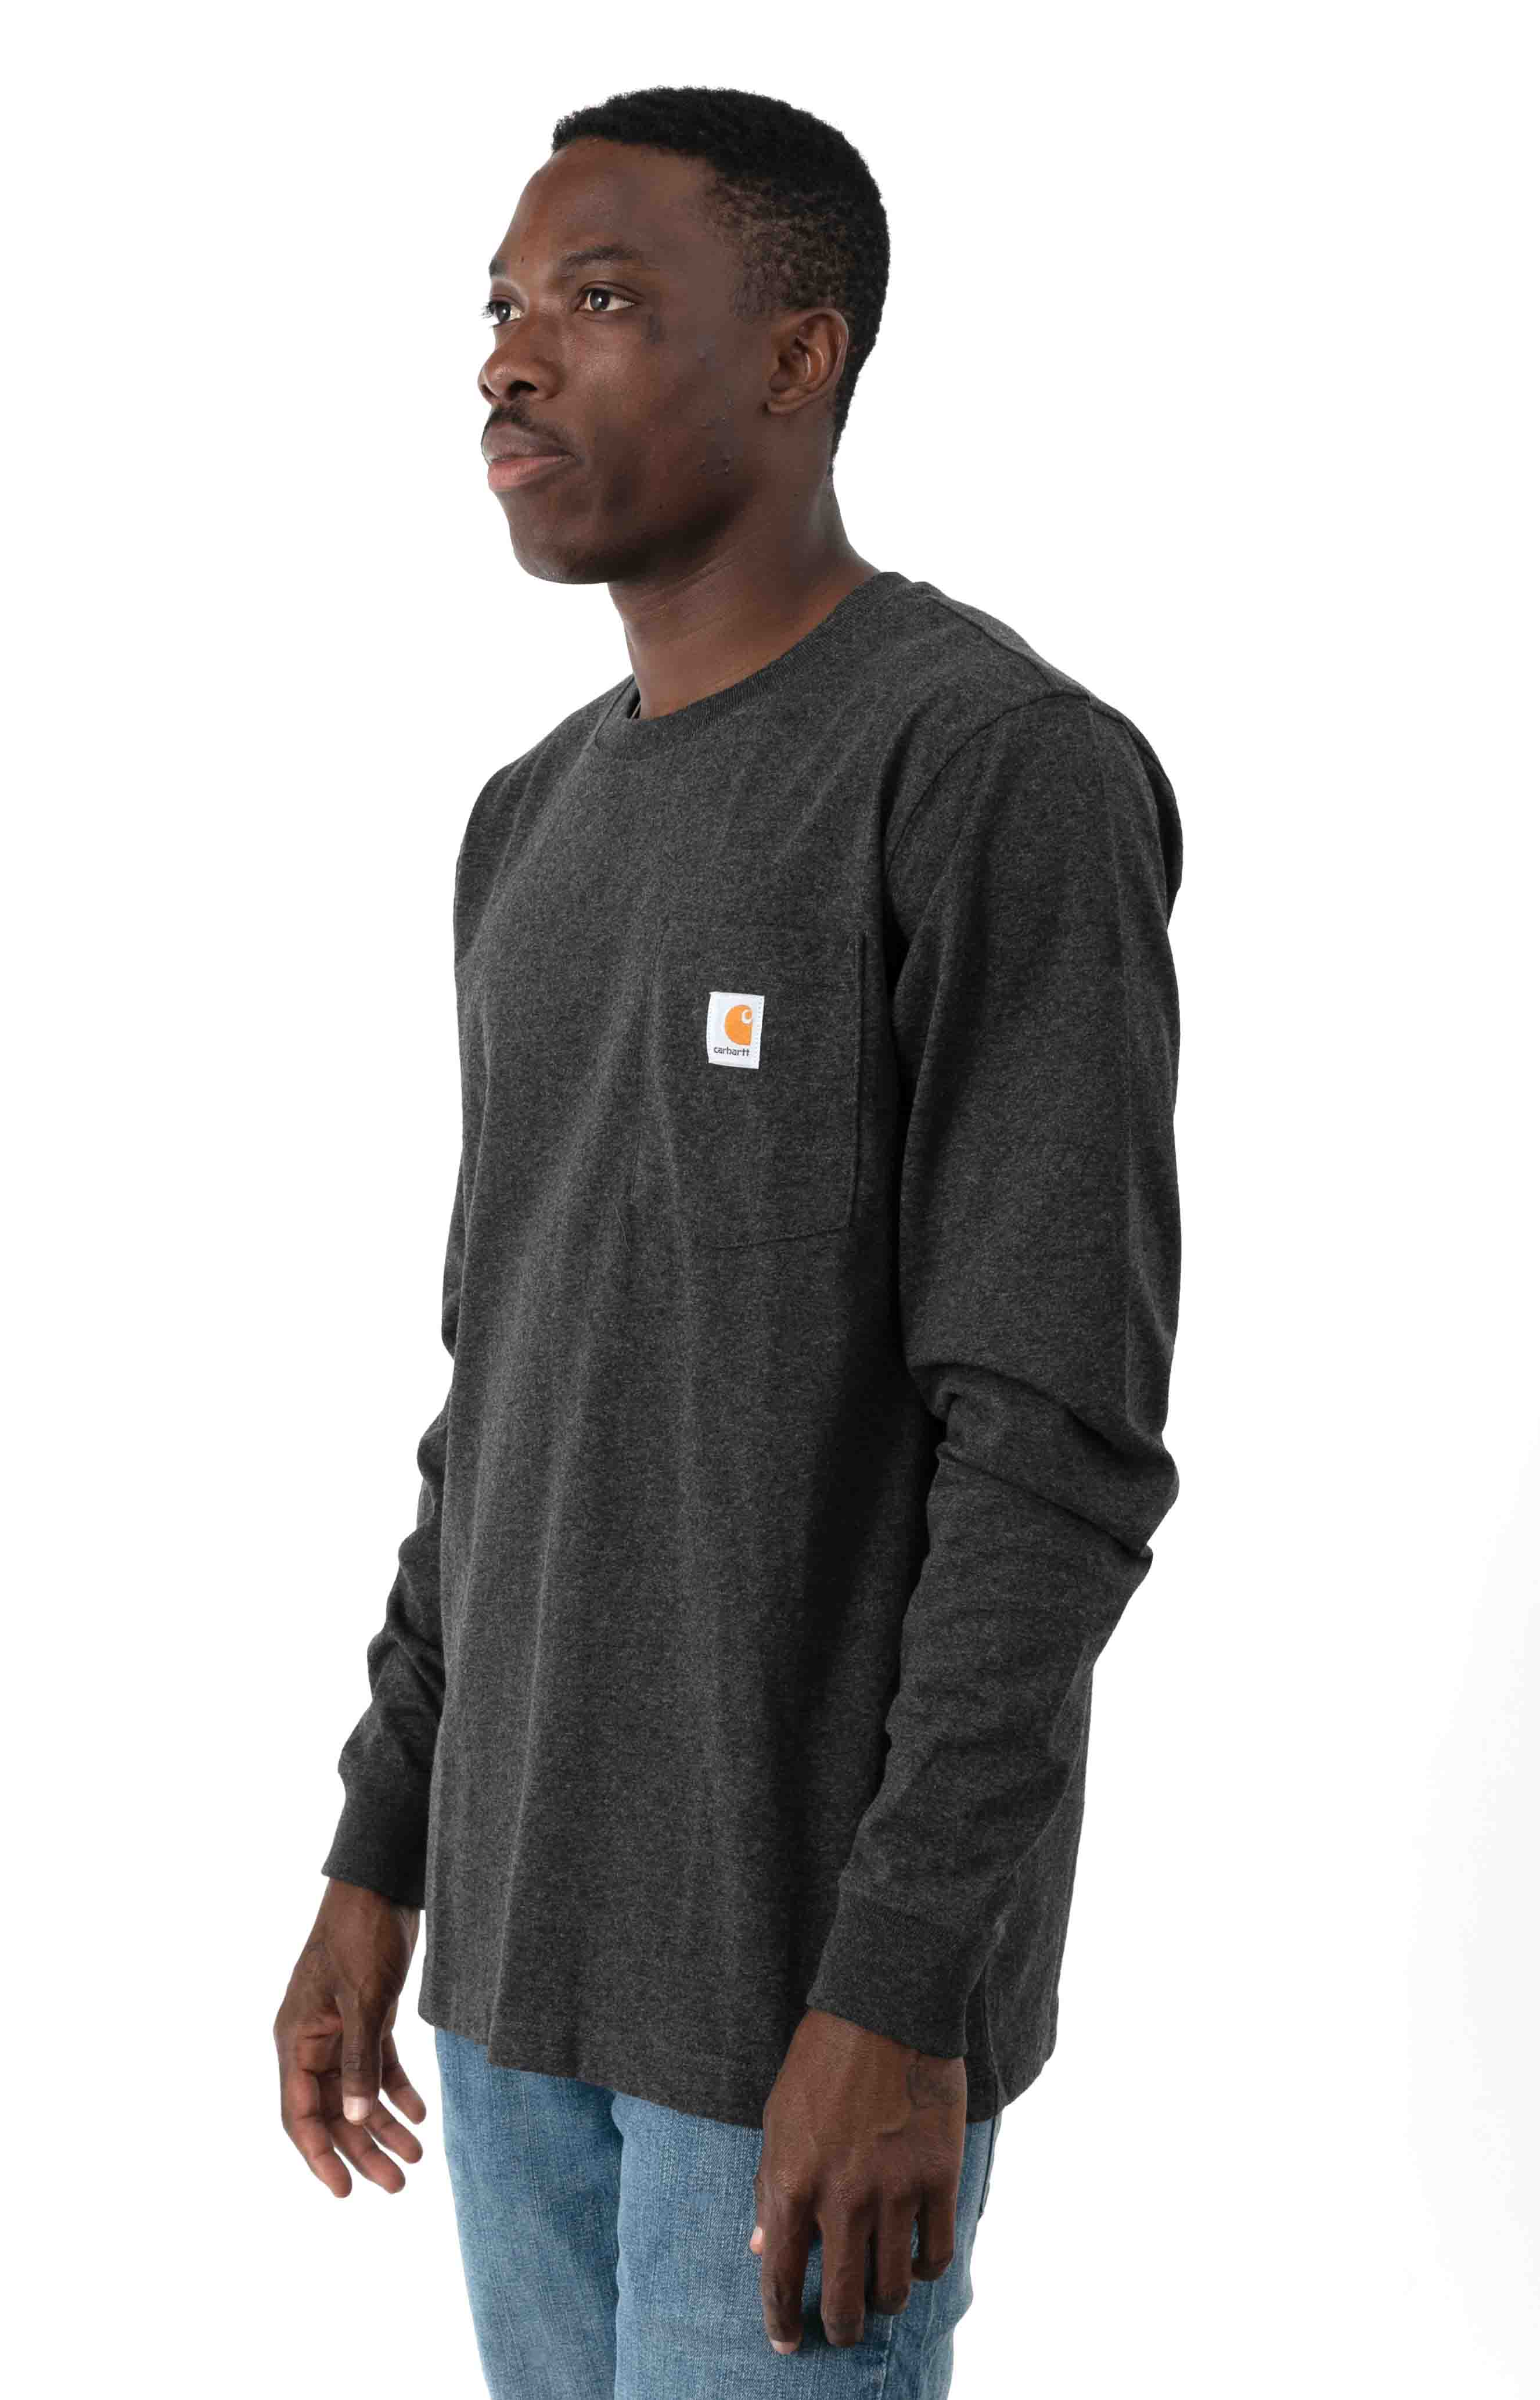 (104438) Relaxed Fit HW L/S Pocket Built For The Elements Graphic Shirt - Carbon Heather  3